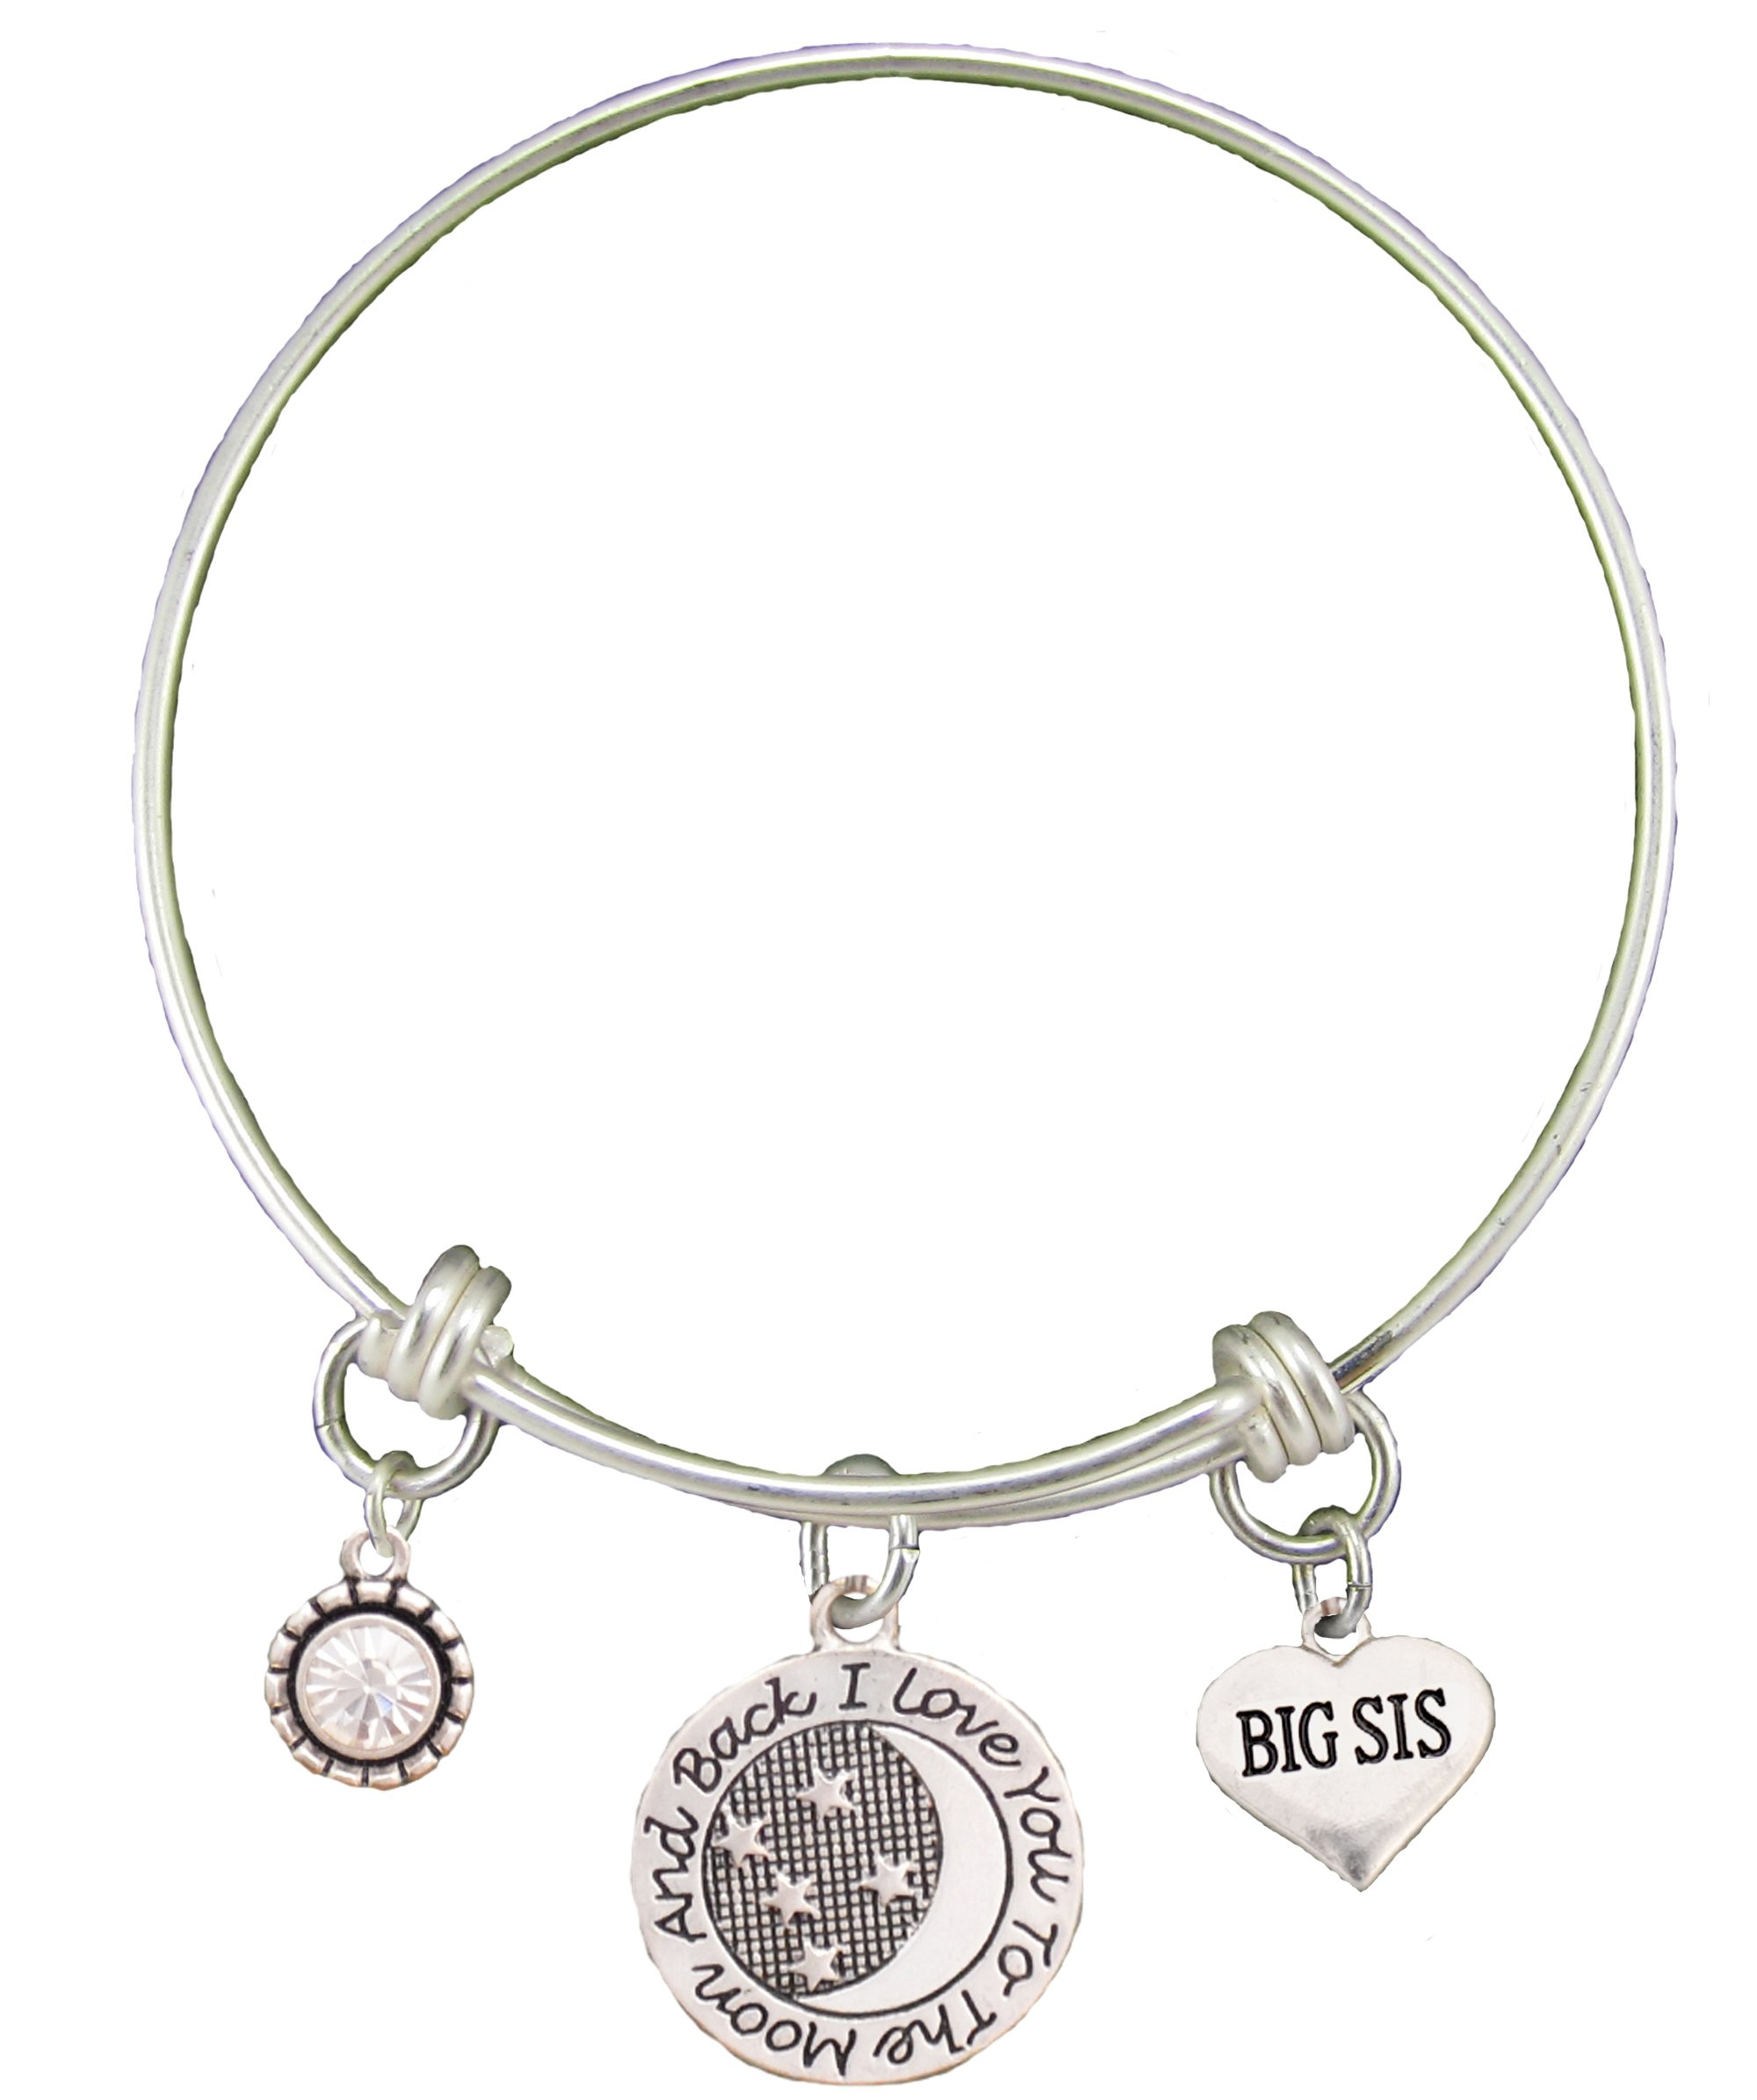 Big Sis Love You To The Moon Silver Wire Adjustable Bracelet Sister Jewelry Gift